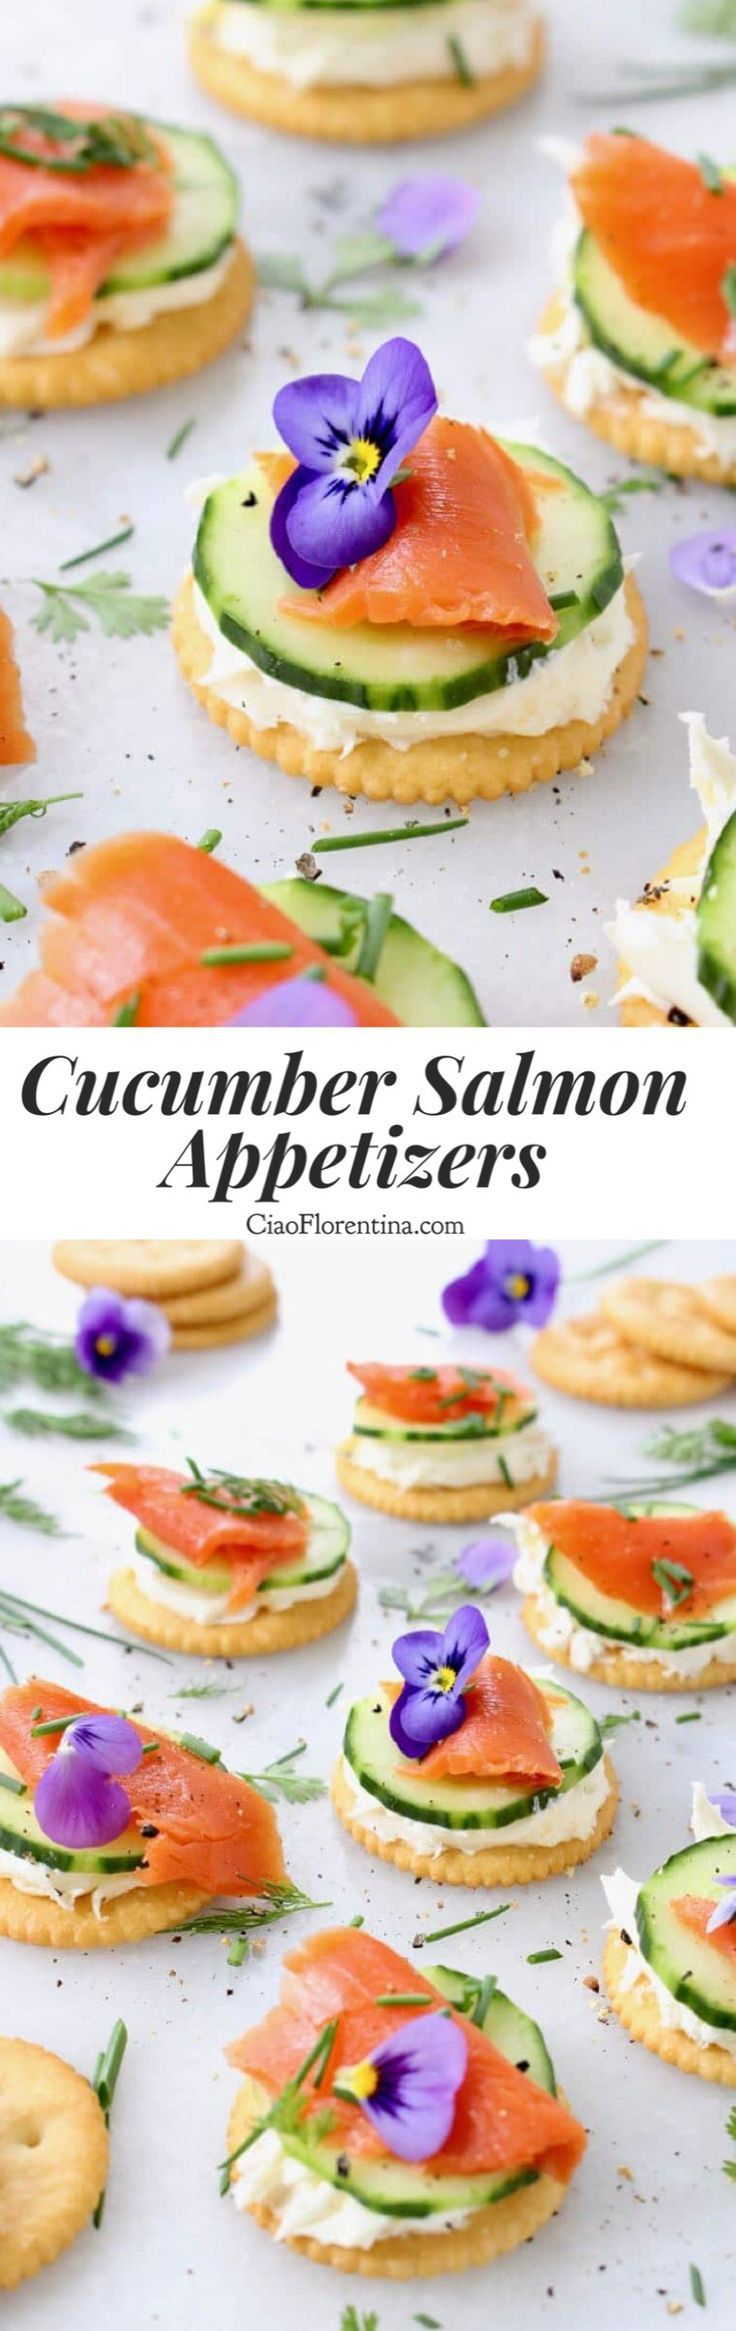 Cucumber Salmon Appetizers, 5 ingredients, quick and easy, perfect for a garden brunch and Mother's Day CiaoFlorentina.com @CiaoFlorentina